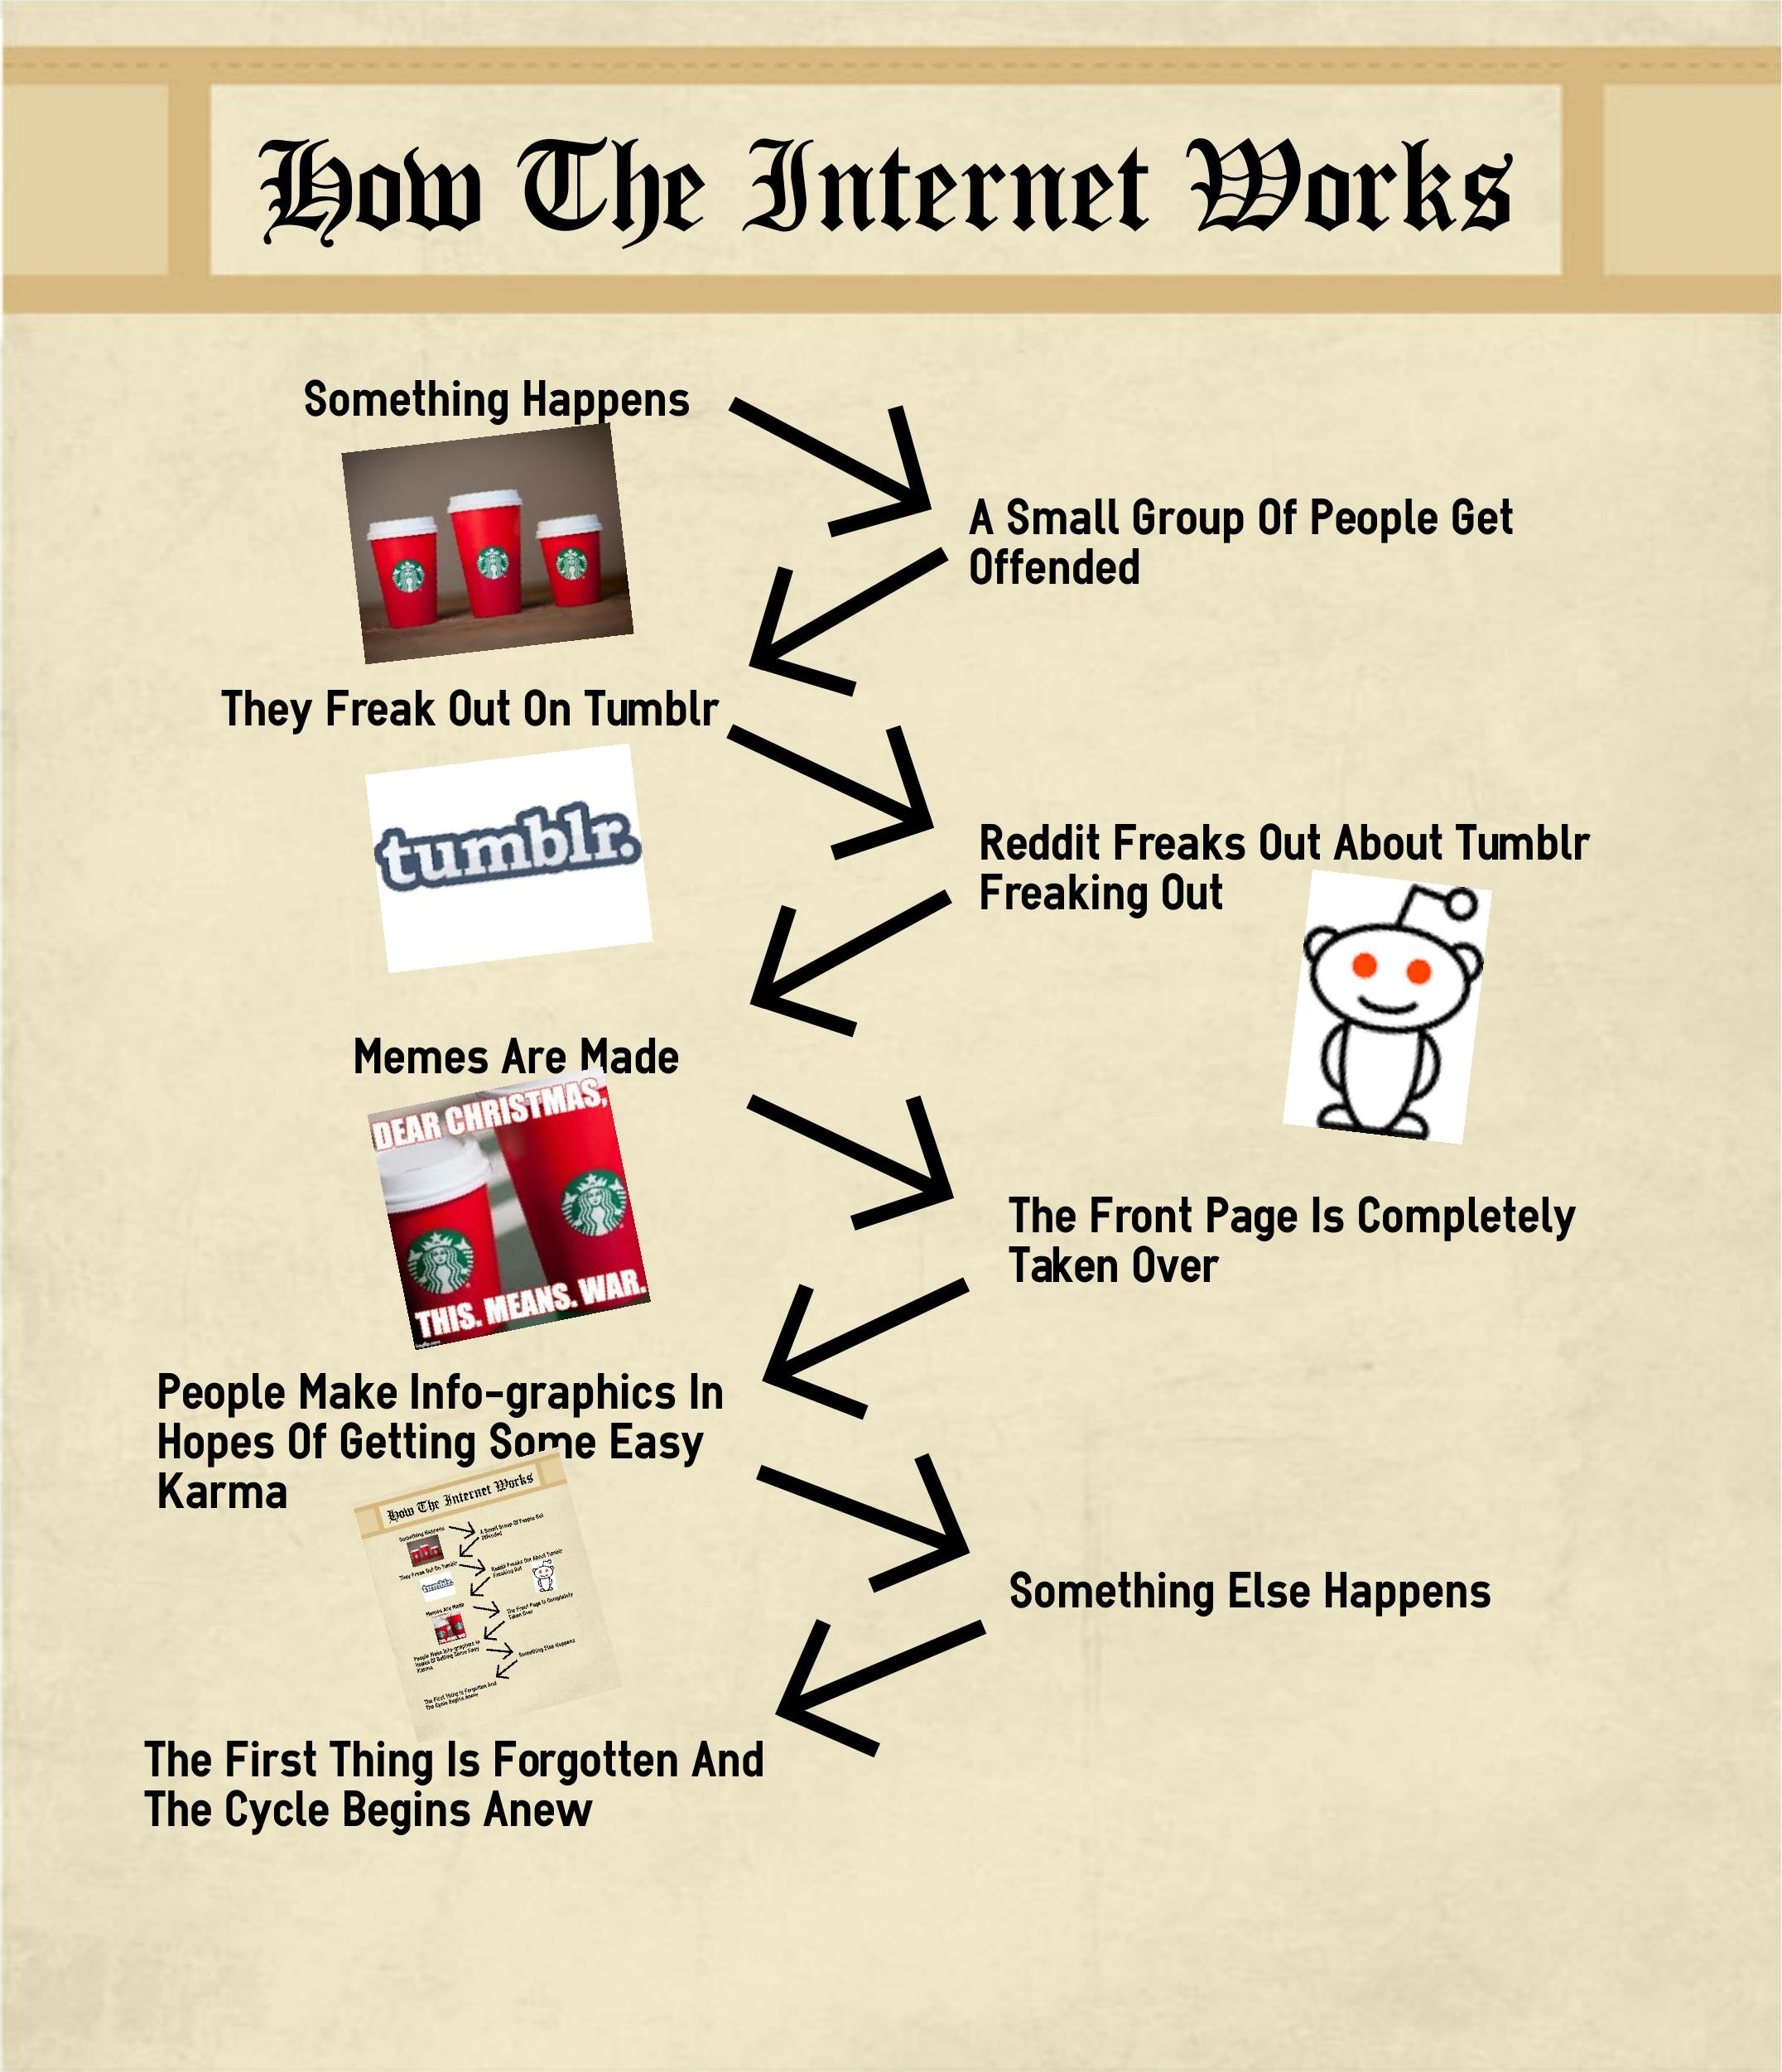 How the internet works starbucks red holiday cup controversy how the internet works starbucks red holiday cup controversy starbucks red holiday cup controversy know your meme nvjuhfo Images